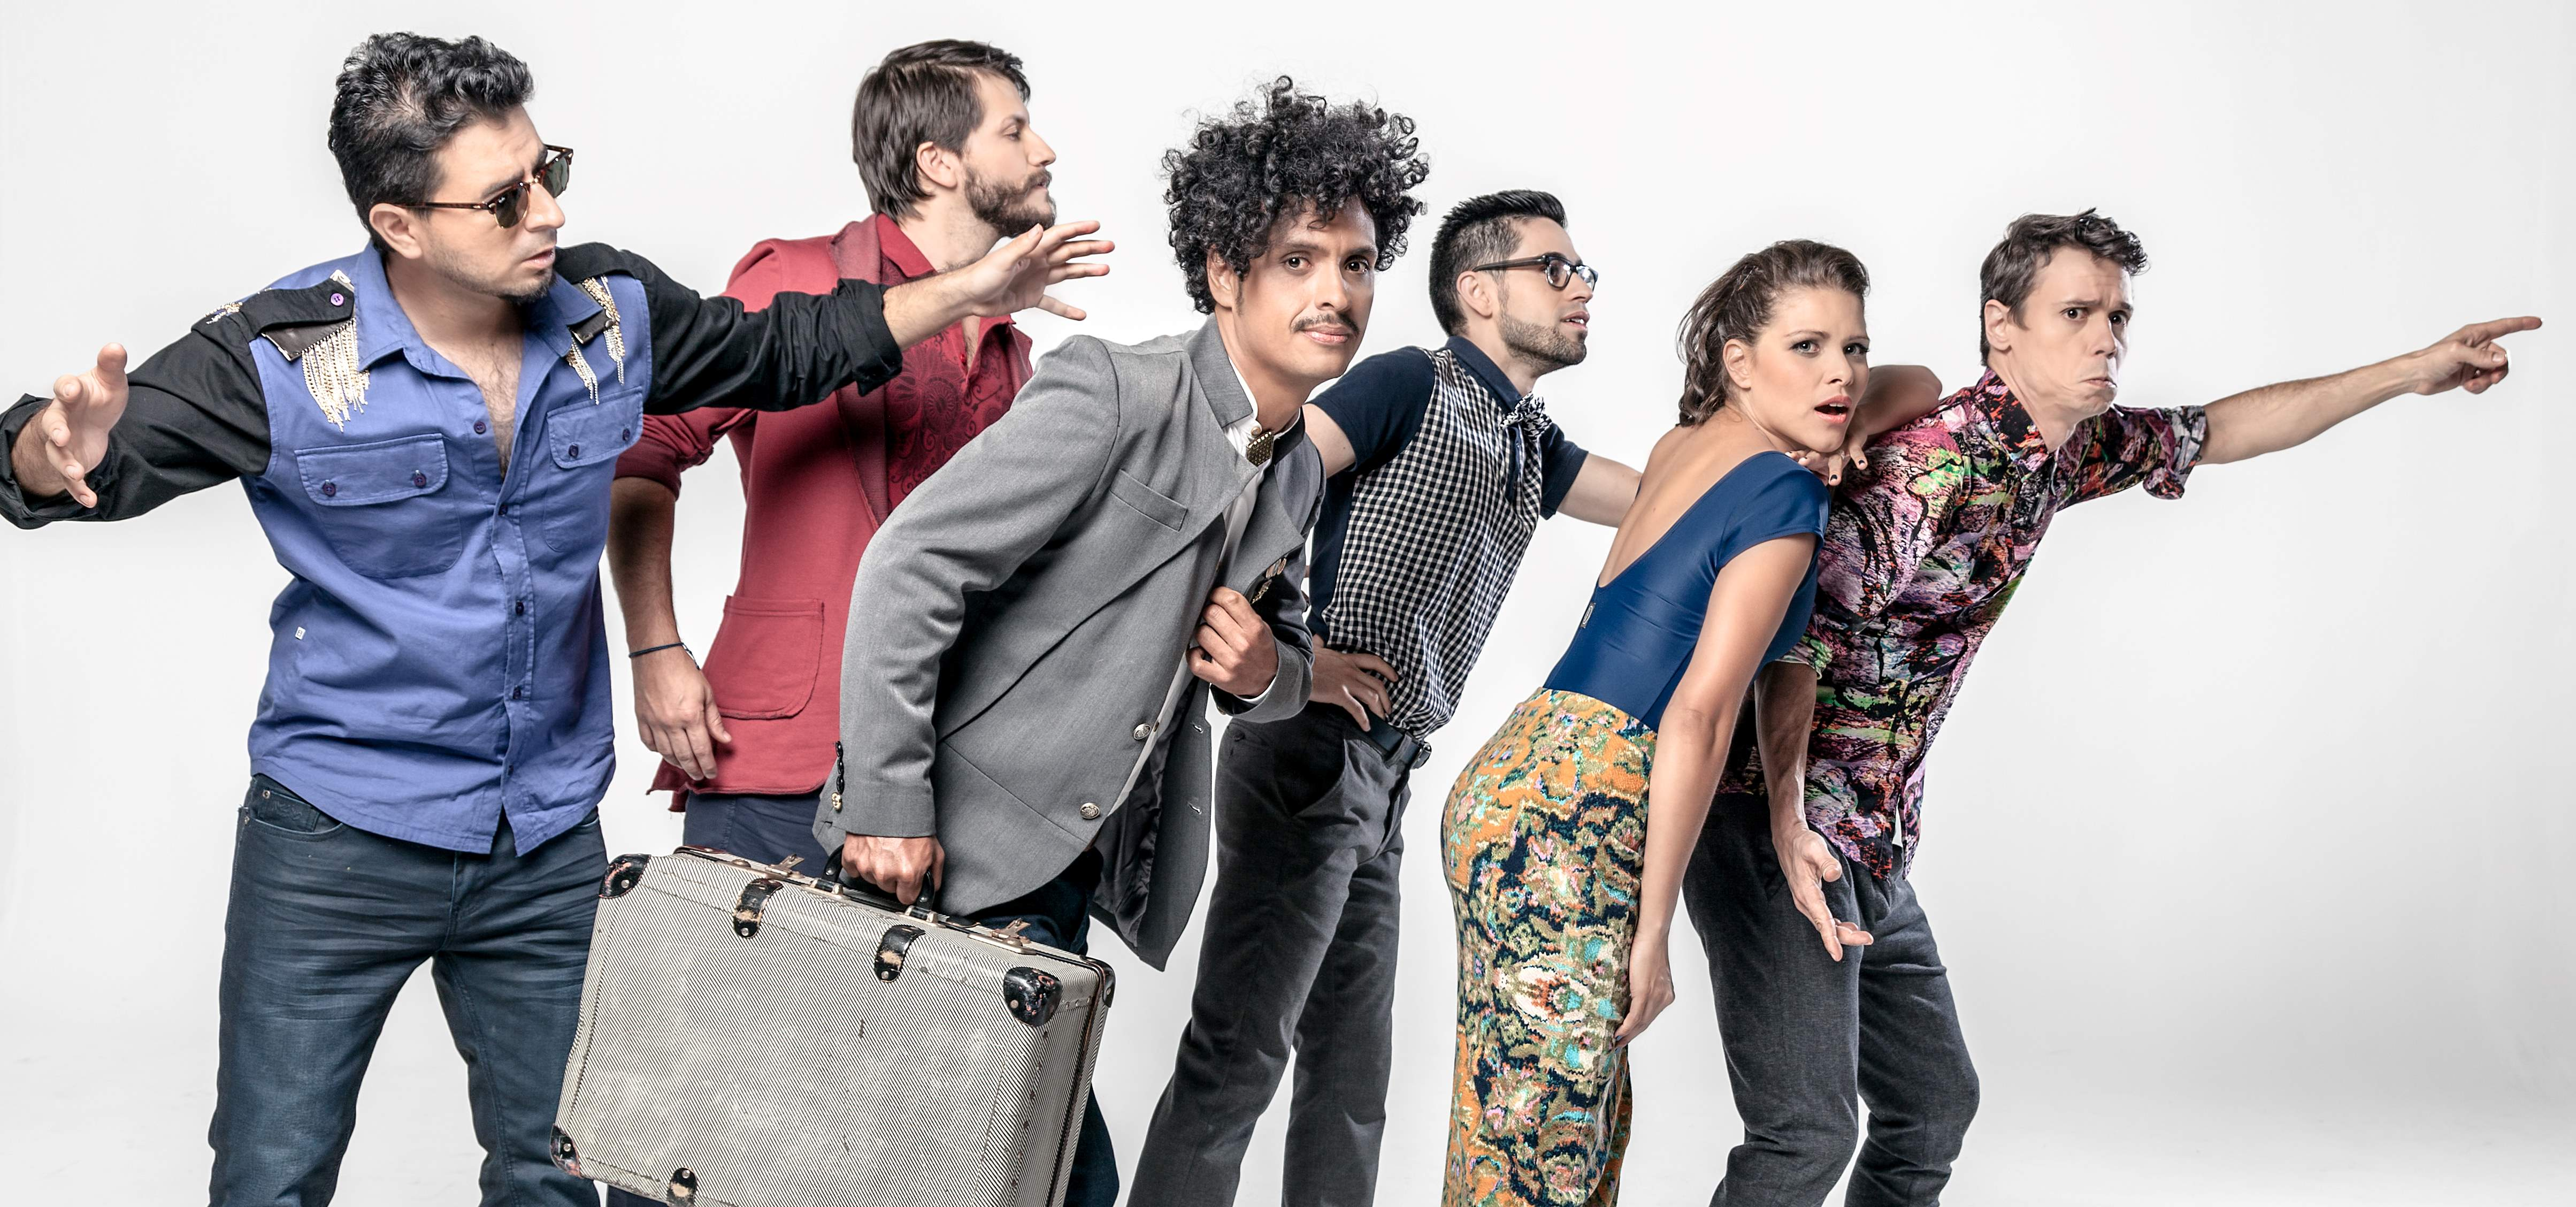 Puerto Candelaria perform at Oslo World Music Festival 2016